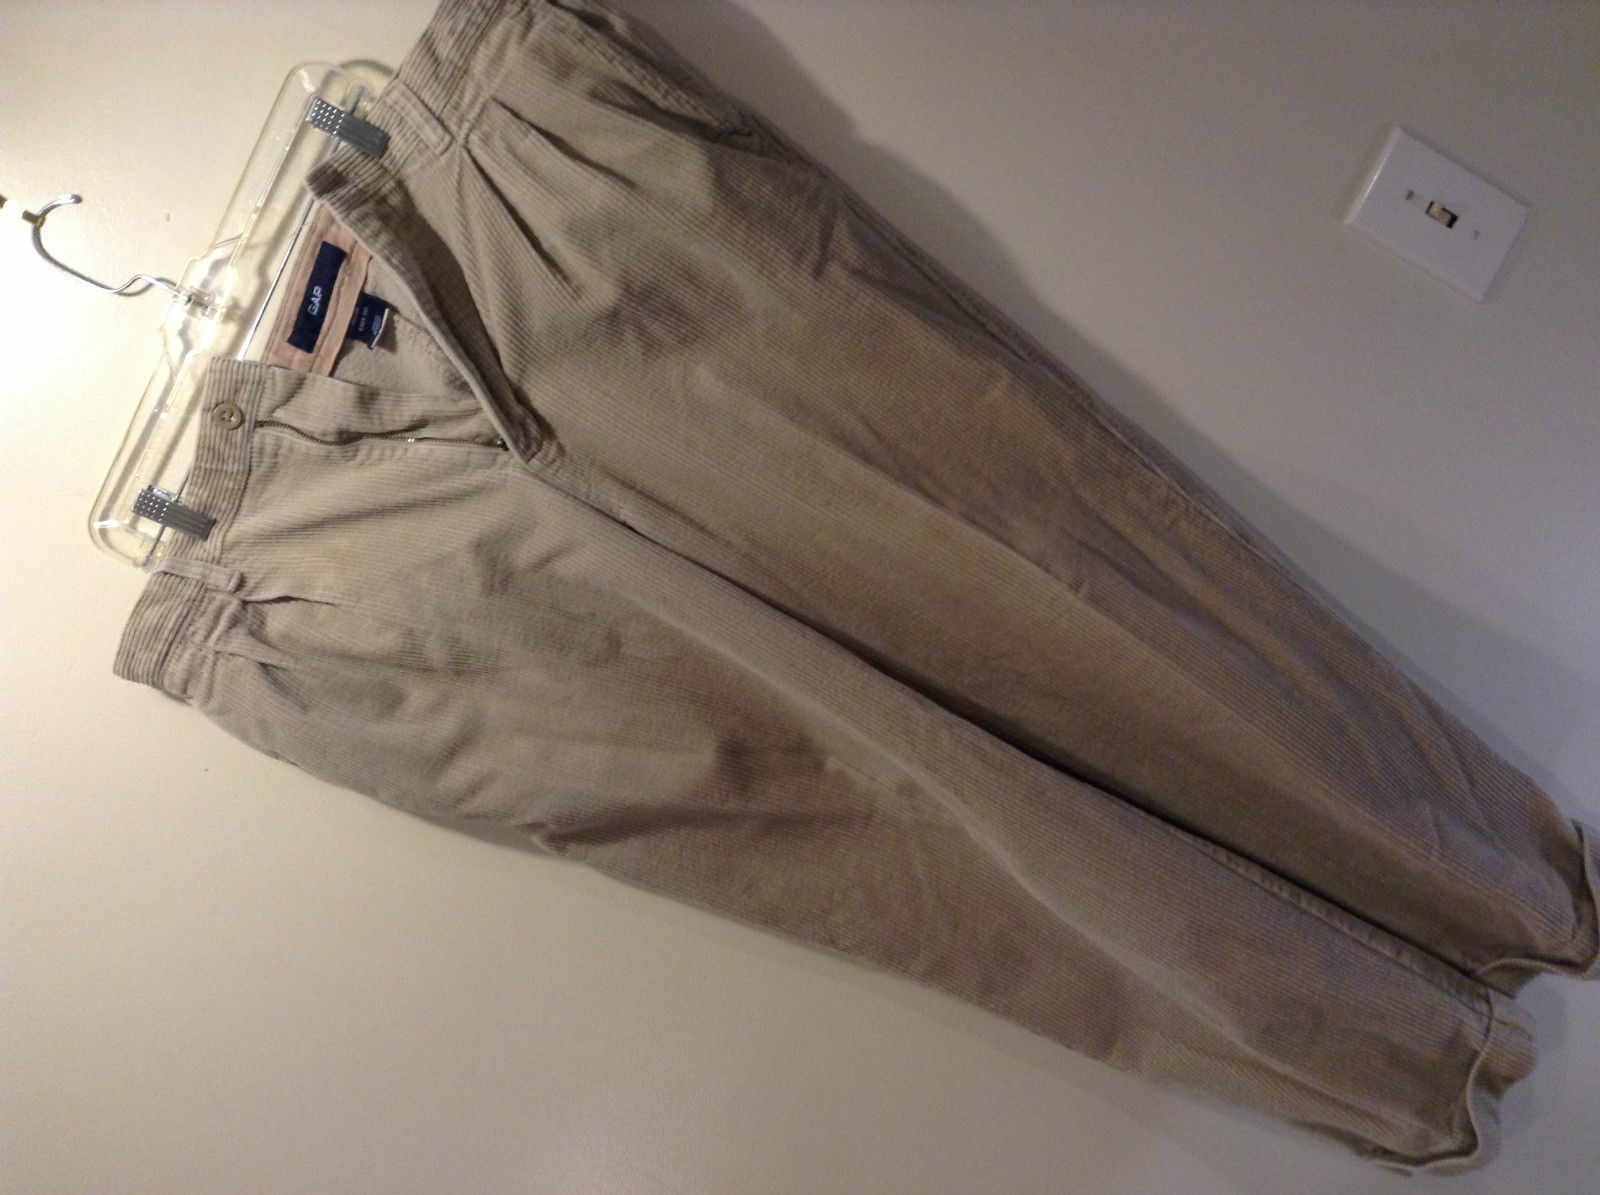 Tan Corduroy Gap Casual Pants Size 40 by 30 Easy Fit Zipper Button Closure